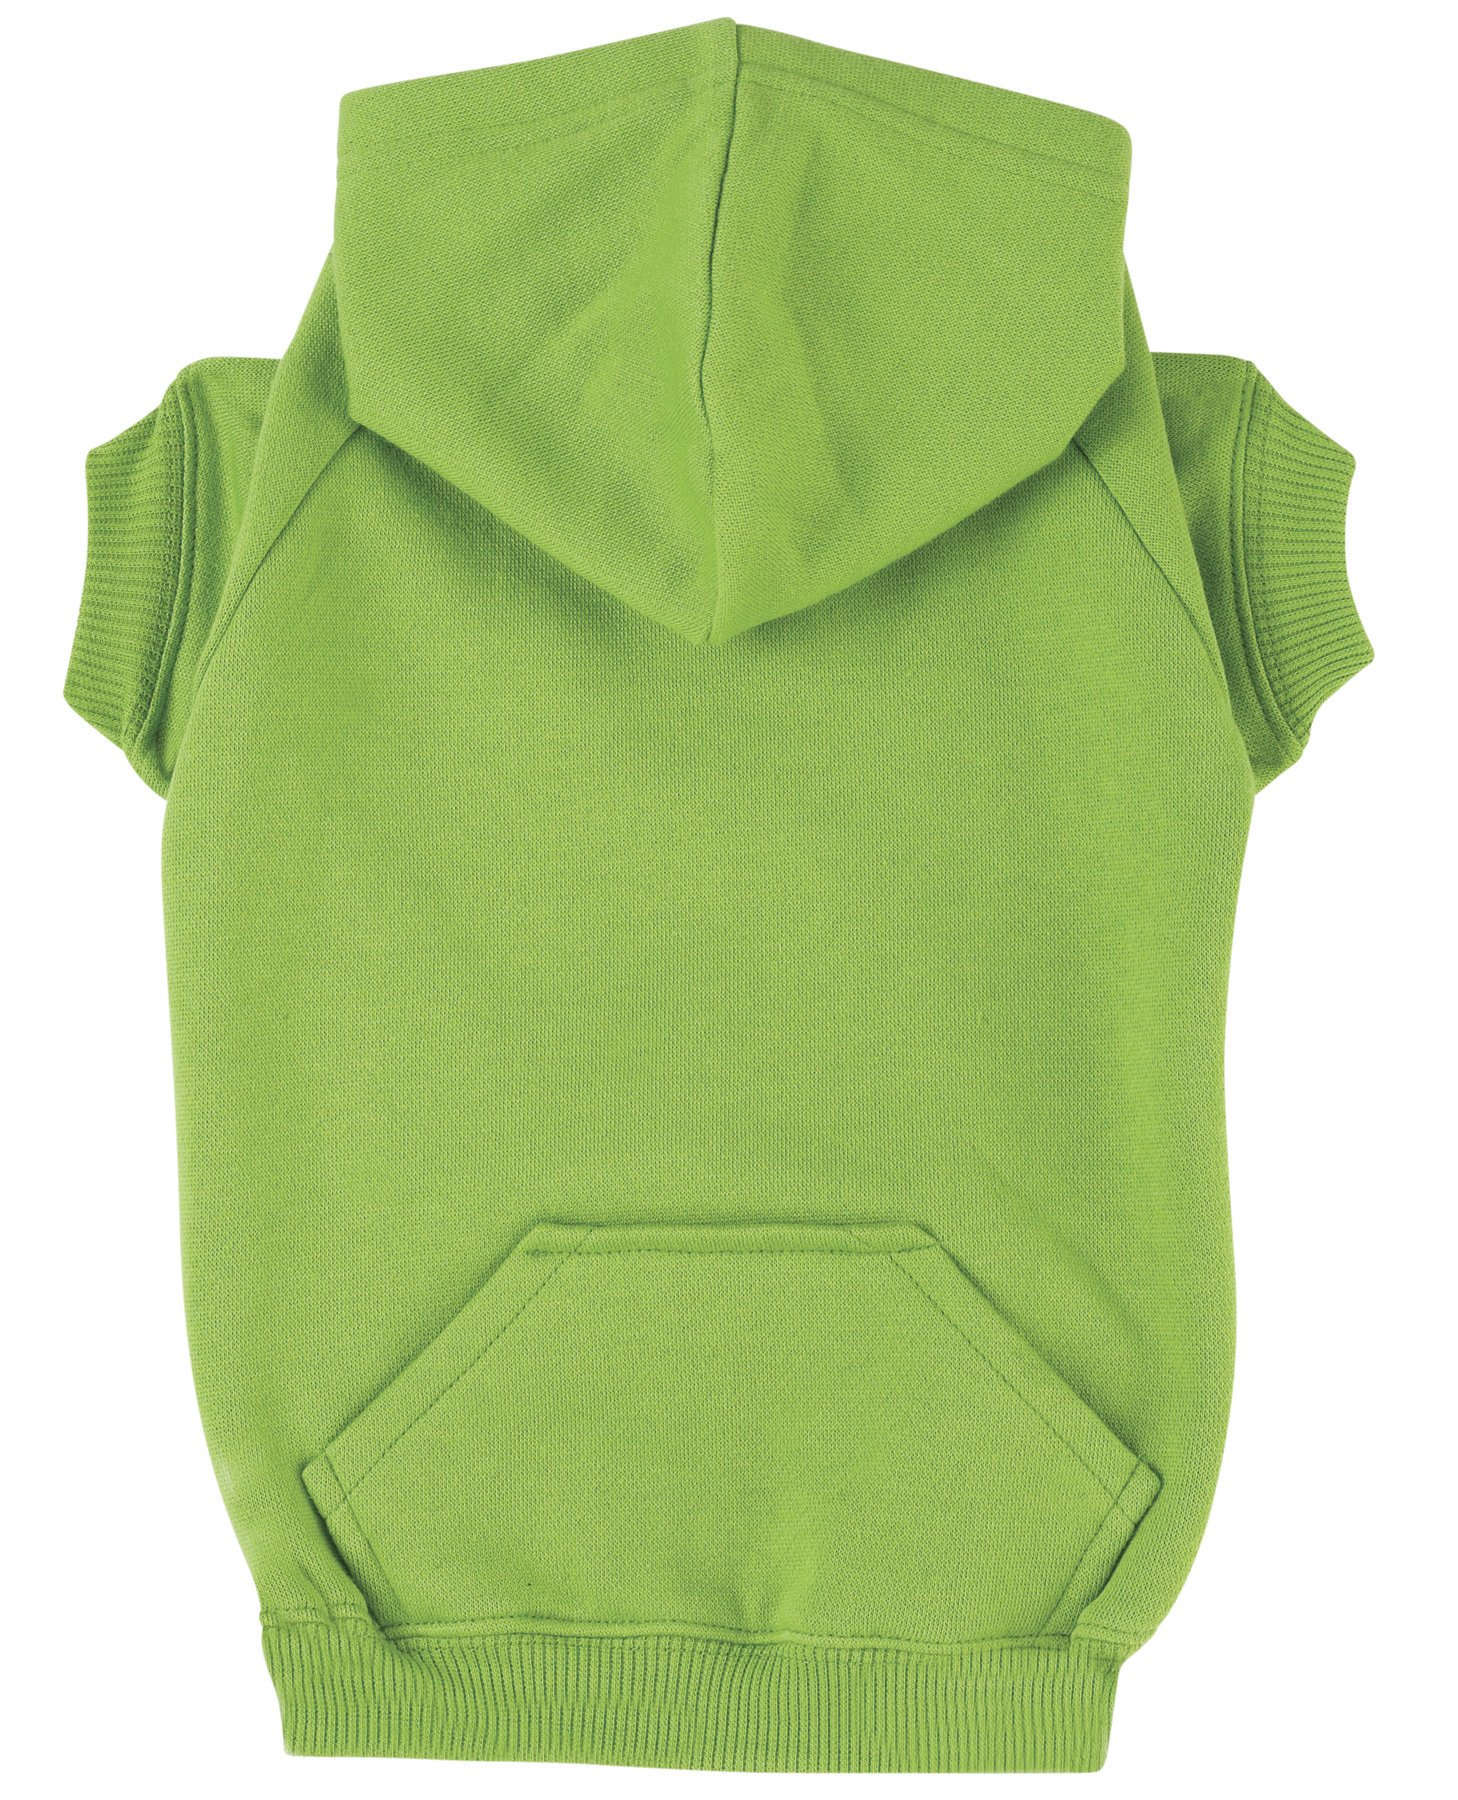 Zack & Zoey Basic Hoodie for Dogs, 12'' Small, Parrot Green